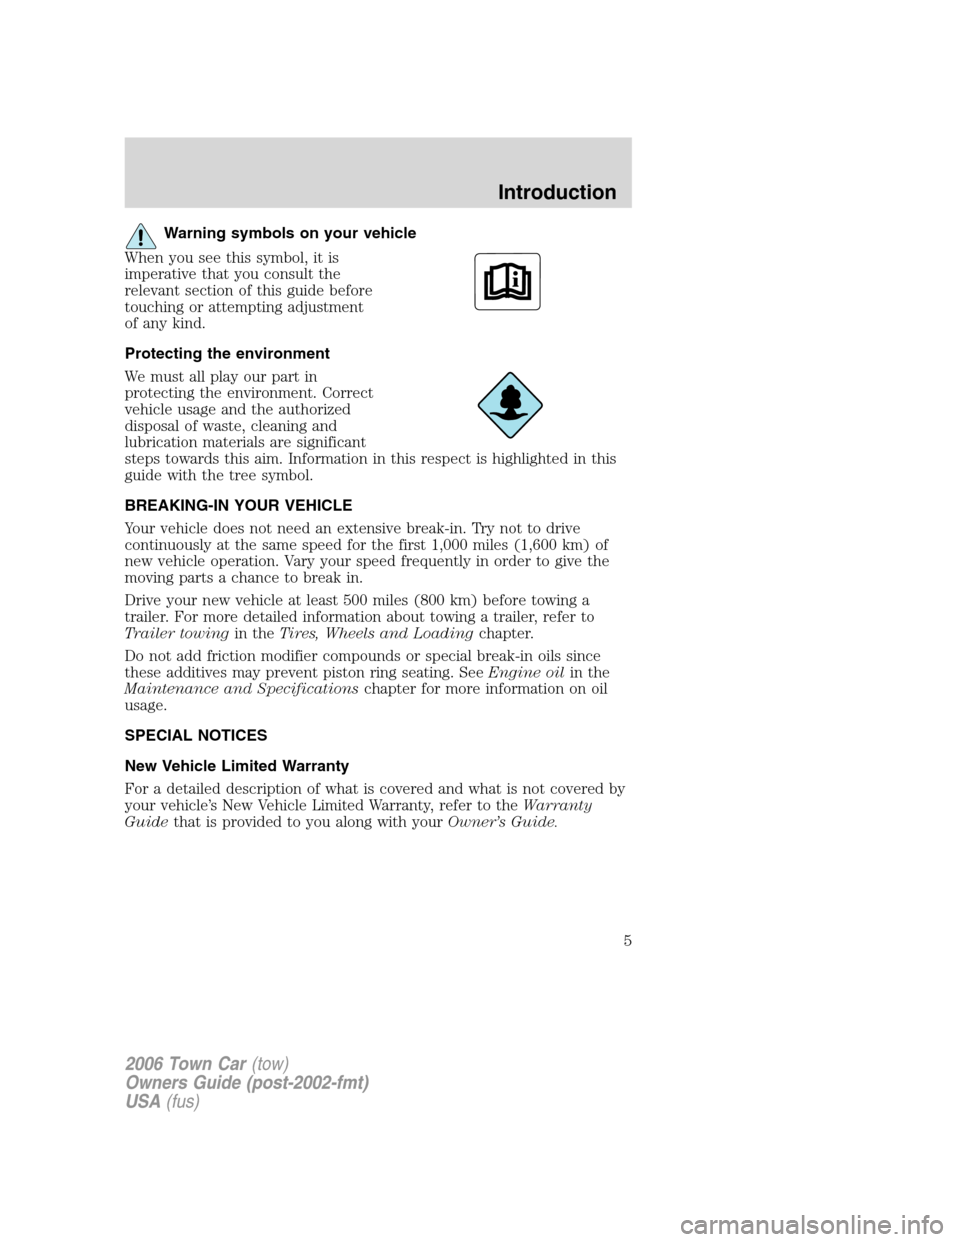 LINCOLN TOWN CAR 2006  Owners Manual, Page 5